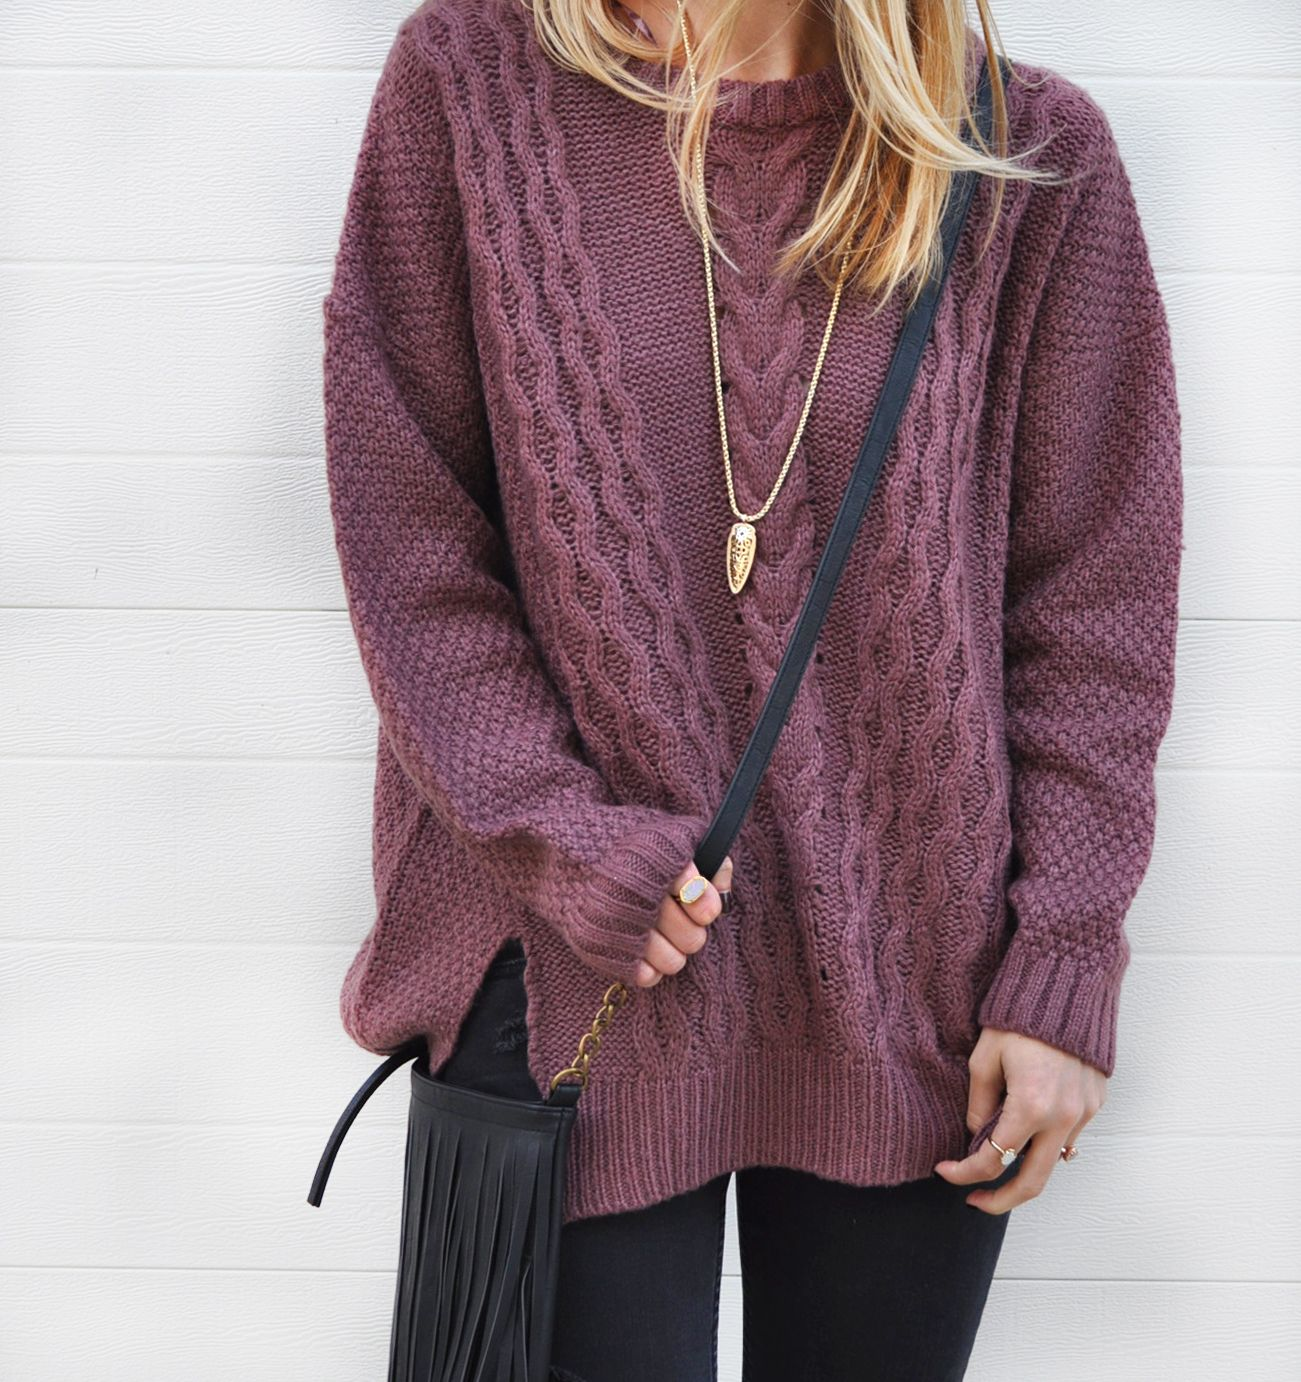 cable knit sweater (on sale!) / LivvyLand | Best Beauty & Style ...